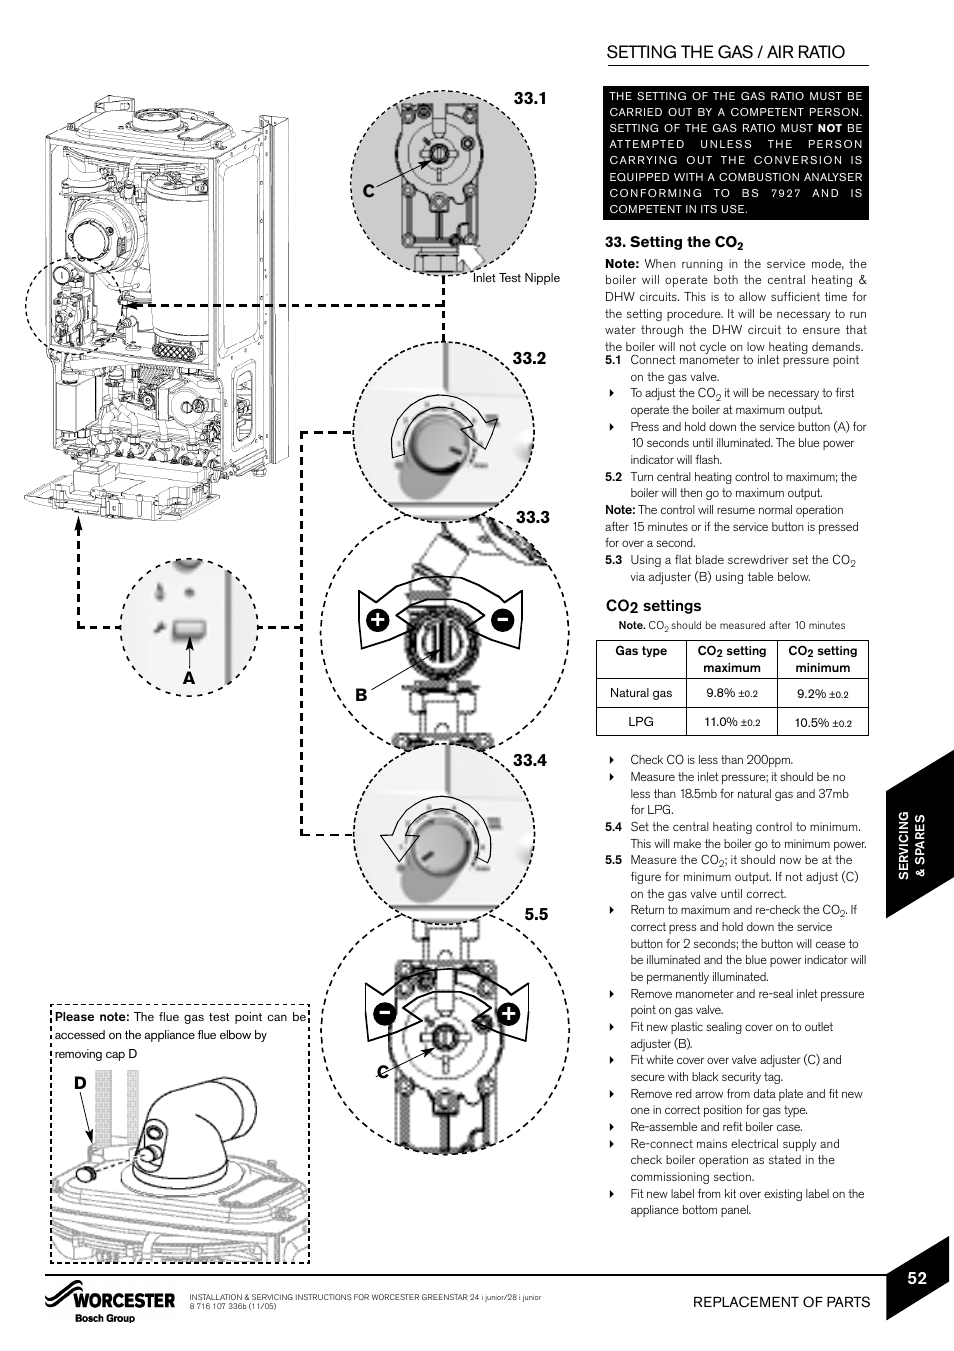 worcester bosch 28cdi wiring diagram wiring diagram and hernes worcester bosch wiring diagrams diagram